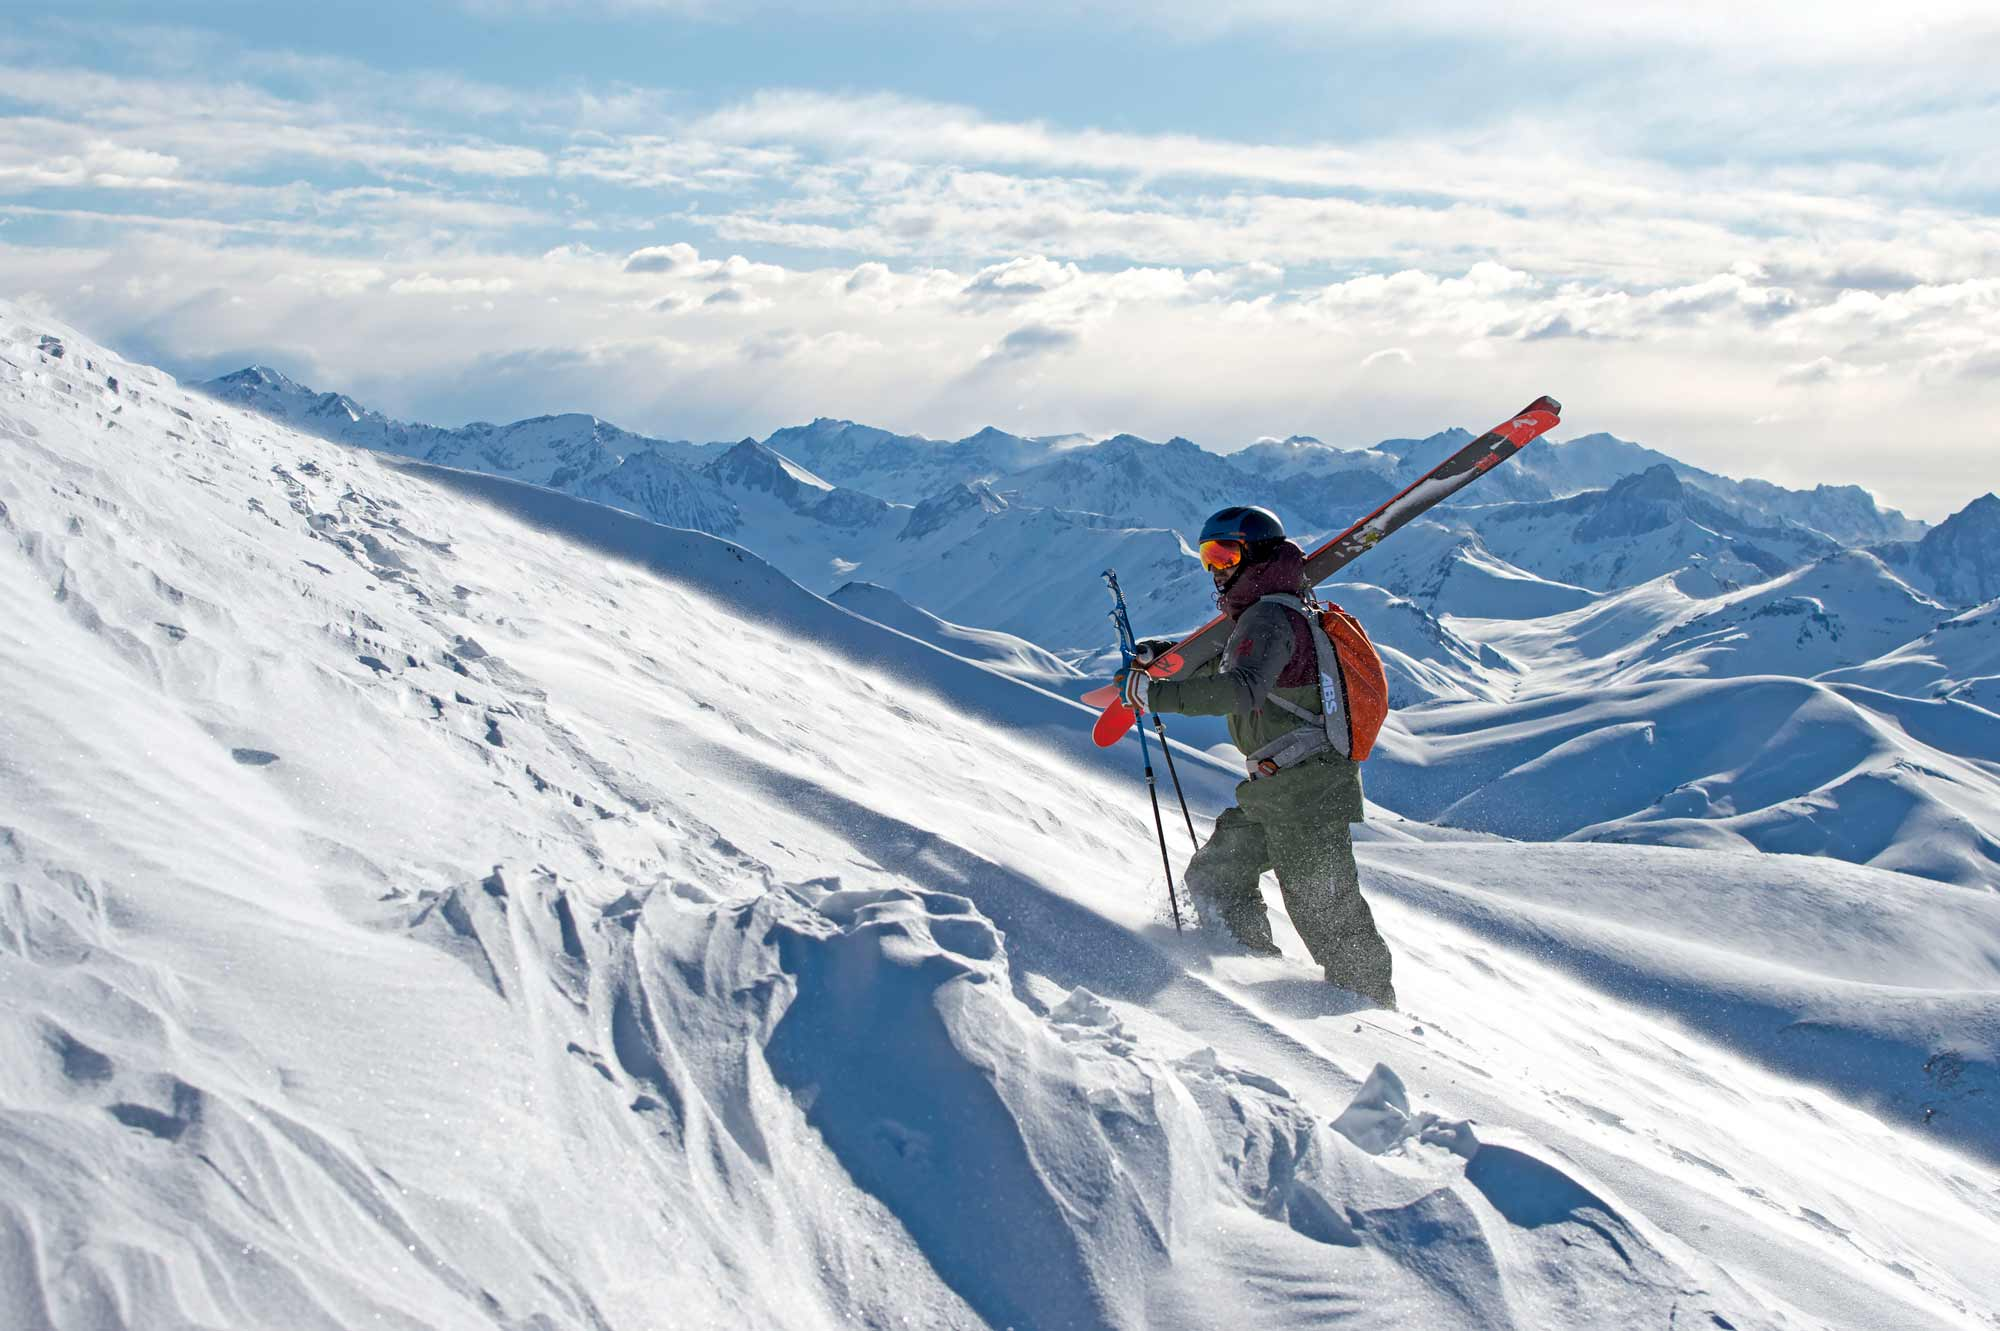 Backcoutry ski touring in the Andes